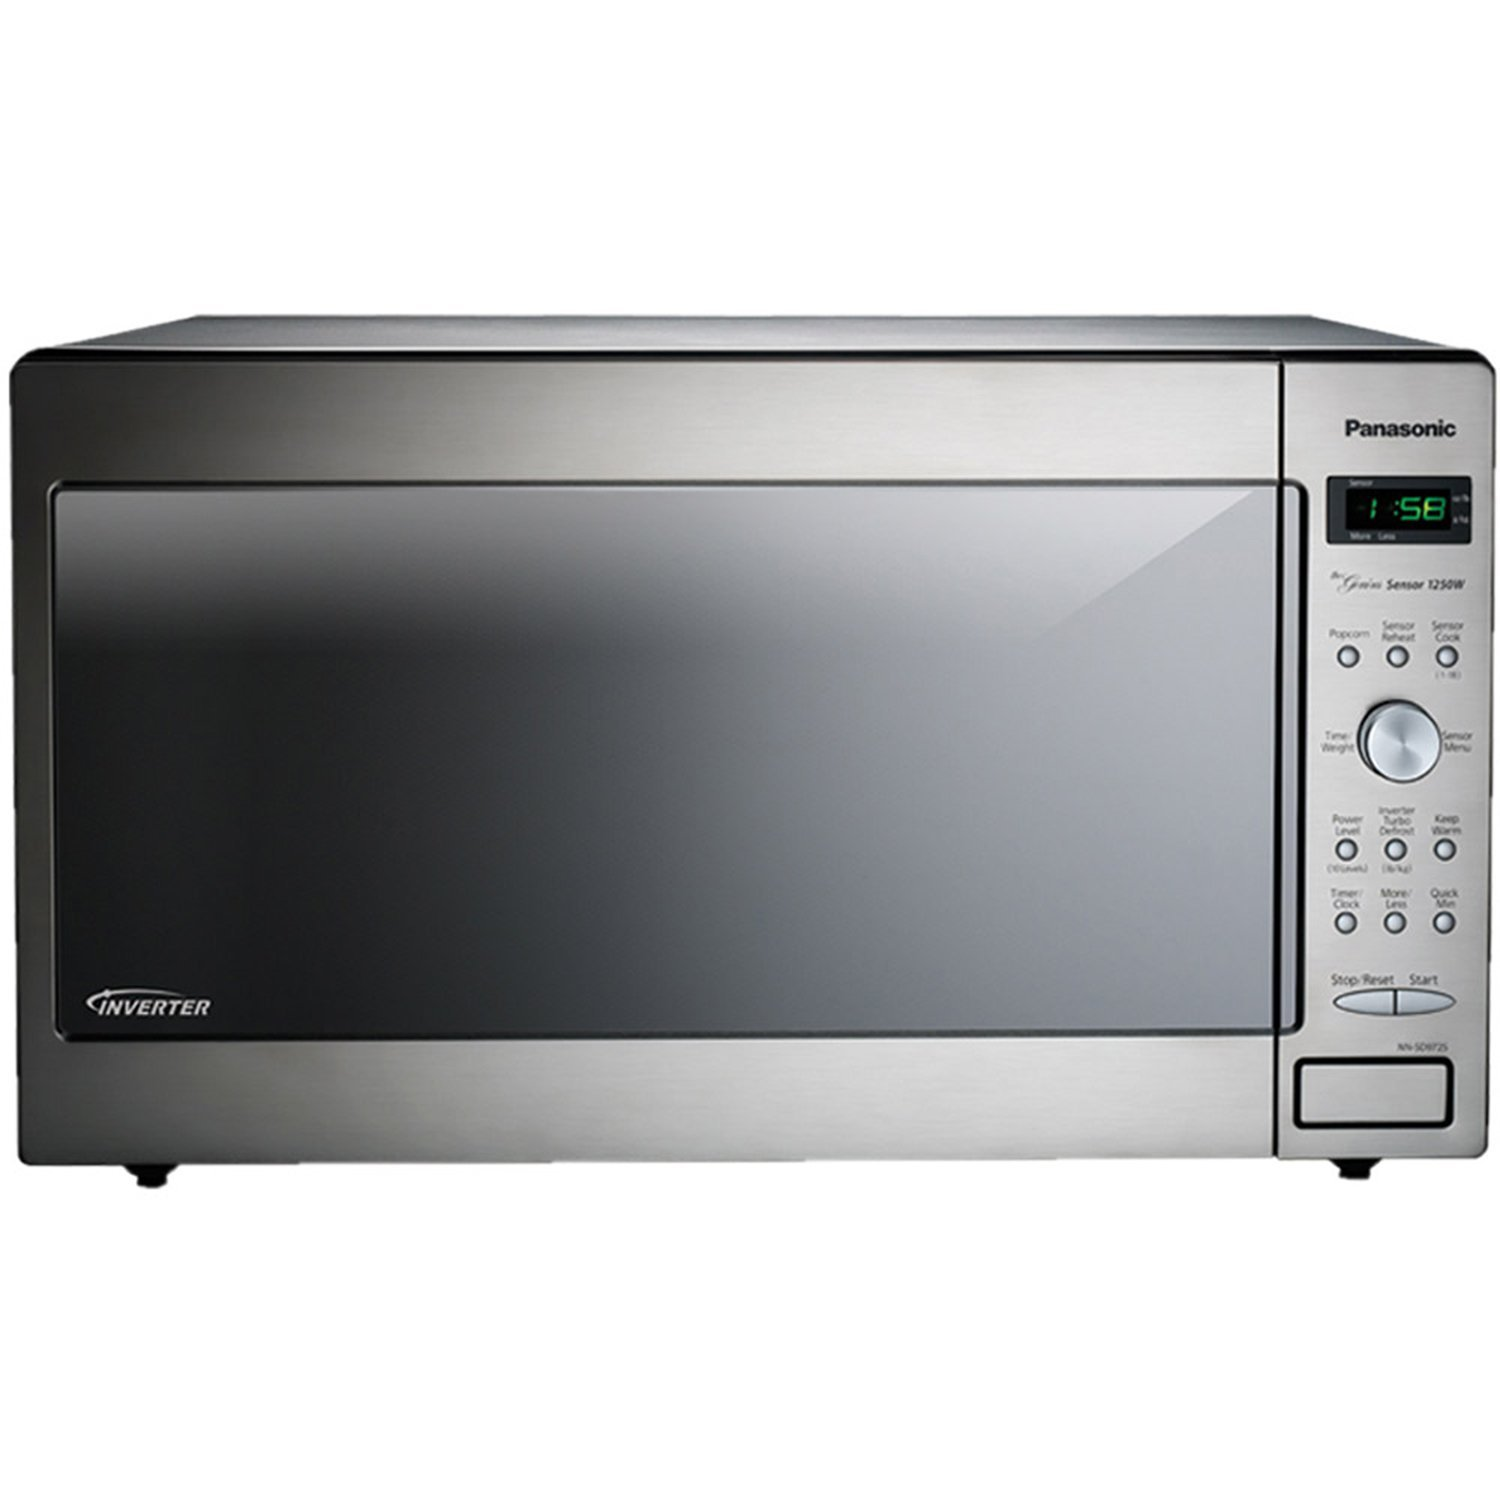 Panasonic NN-SD972S Stainless 1250W 2.2 Cu. Ft. Countertop/Built-in Microwave with Inverter Technology